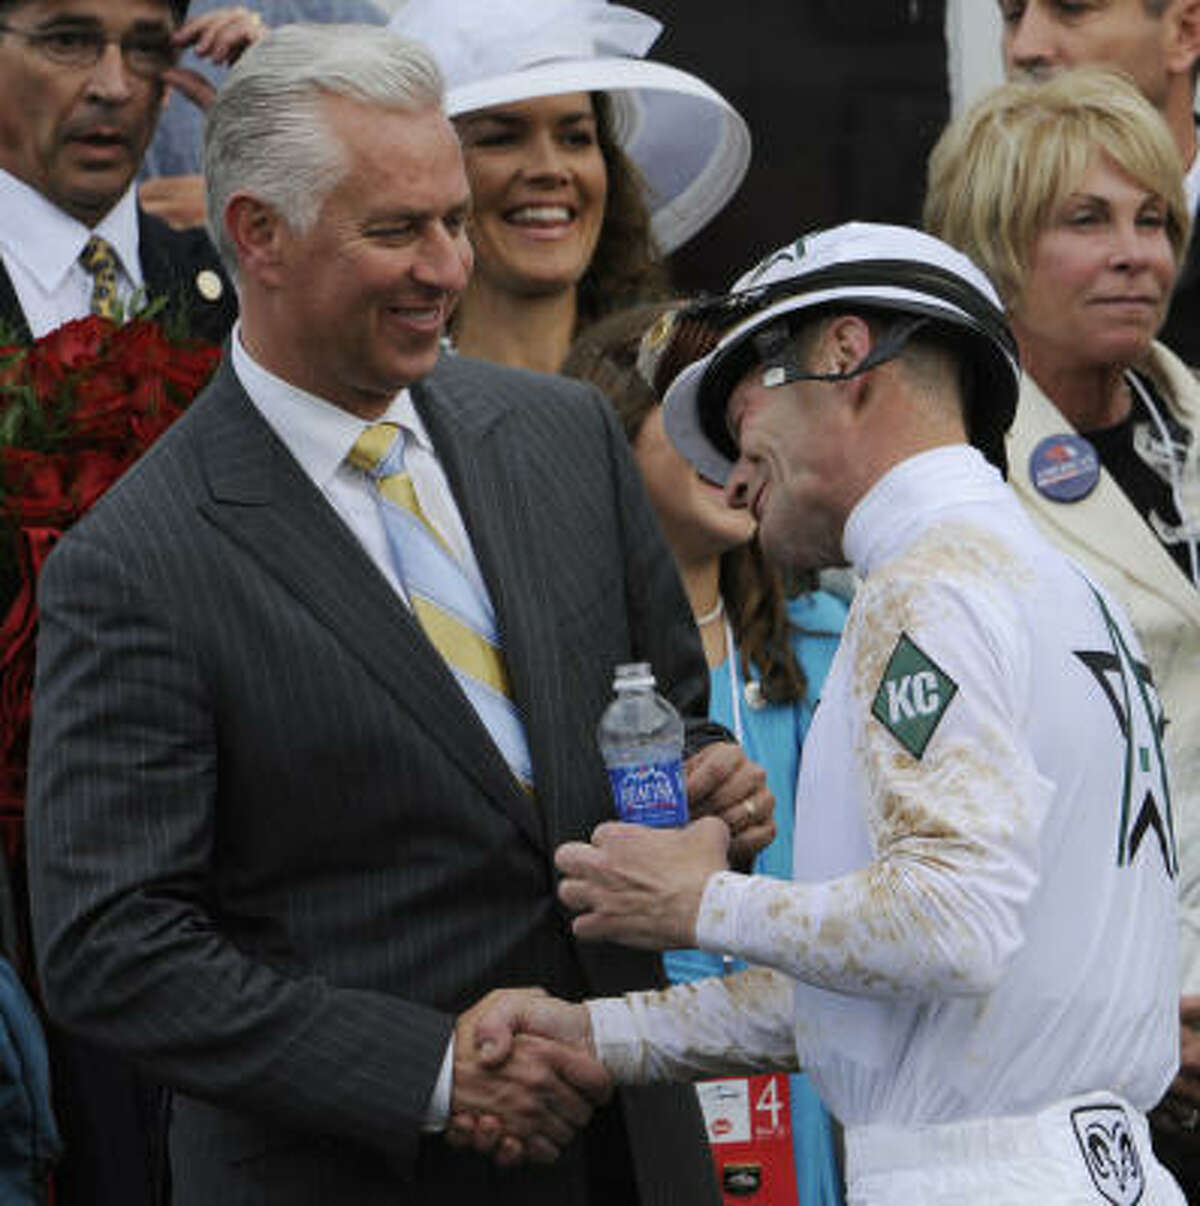 Jockey Calvin Borel is congratulated by Super Saver trainer Todd Pletcher after his first win and Borel's third Kentucky Derby victory.